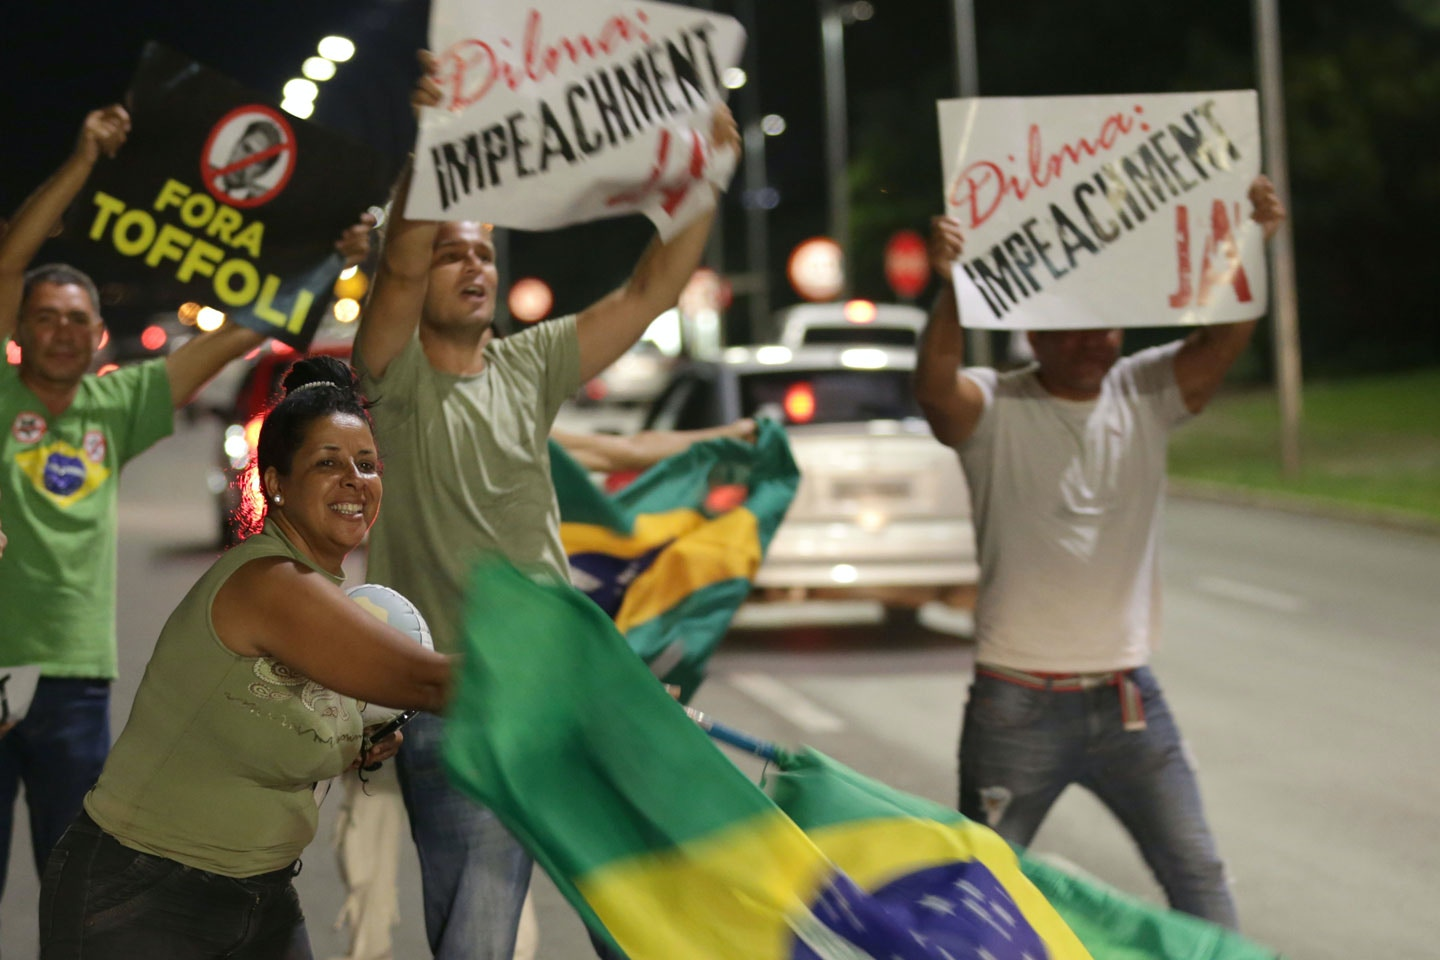 FILE - In this Dec. 2, 2015 file photo, people demonstrate against the government as they take part in protest in favor of impeaching Brazil's President Dilma Rousseff, in front of the National Congress, in Brasilia, Brazil. The country has seen a vicious circle of ballooning crises over the past year. Major scandals, some of which are connected to Rousseff, have combined with tanking commodity prices to deliver blows to the powerhouse economy, including credit-rating downgrades, a sharp currency devaluation and 10-percent annual inflation. (AP Photo/Eraldo Peres, File)